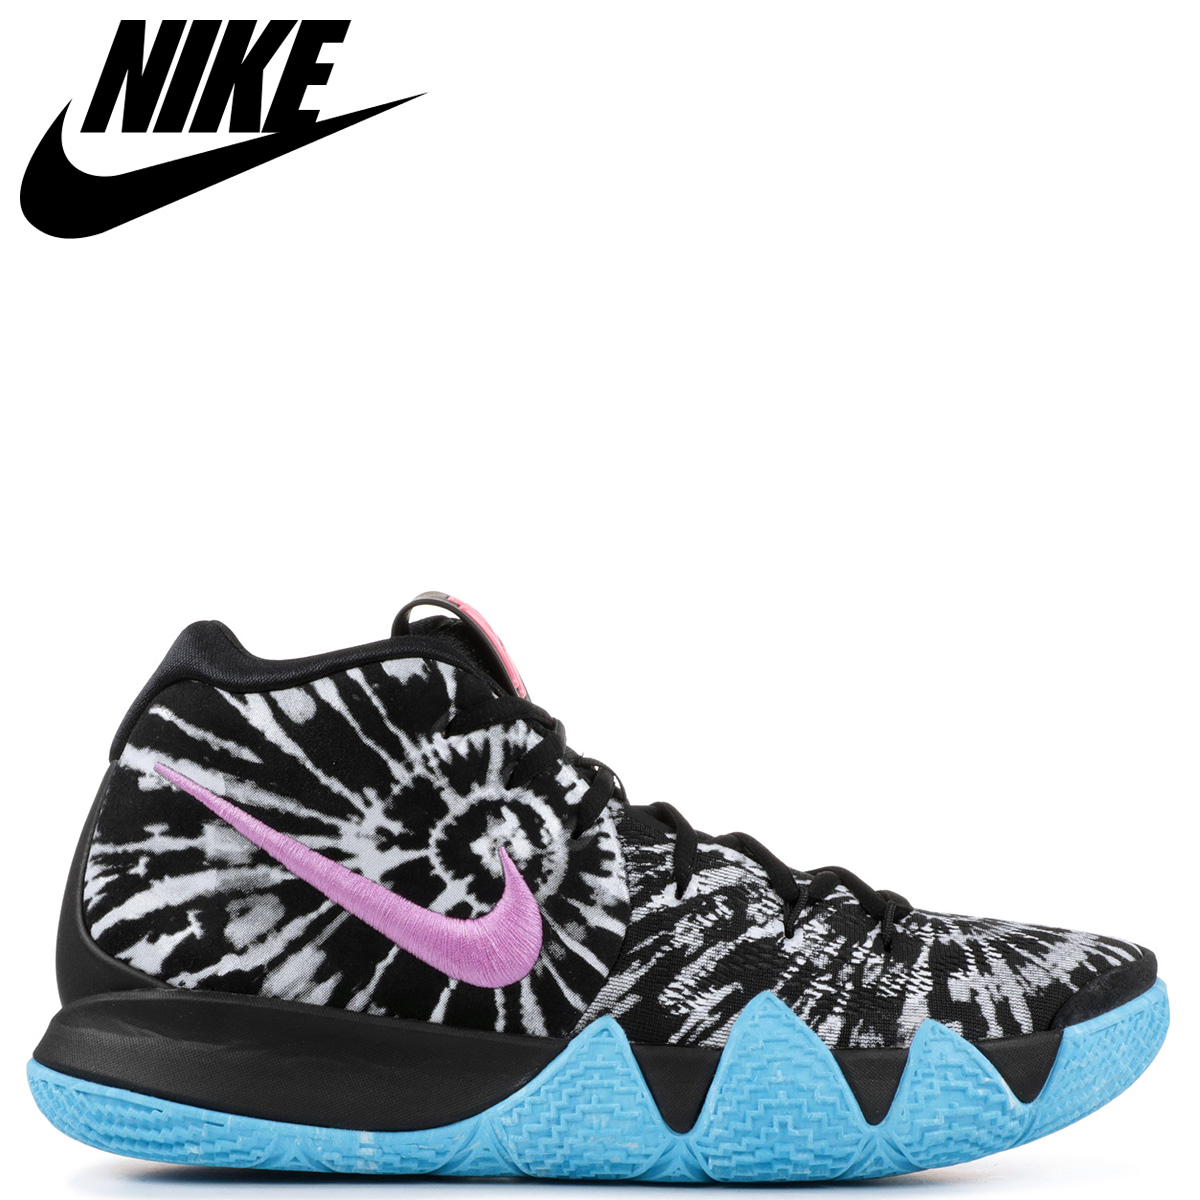 46088a488 Categories. « All Categories · Shoes · Men's Shoes · Sneakers · Nike NIKE  chi Lee 4 sneakers men KYRIE 4 ALL STAR black AQ8623-001